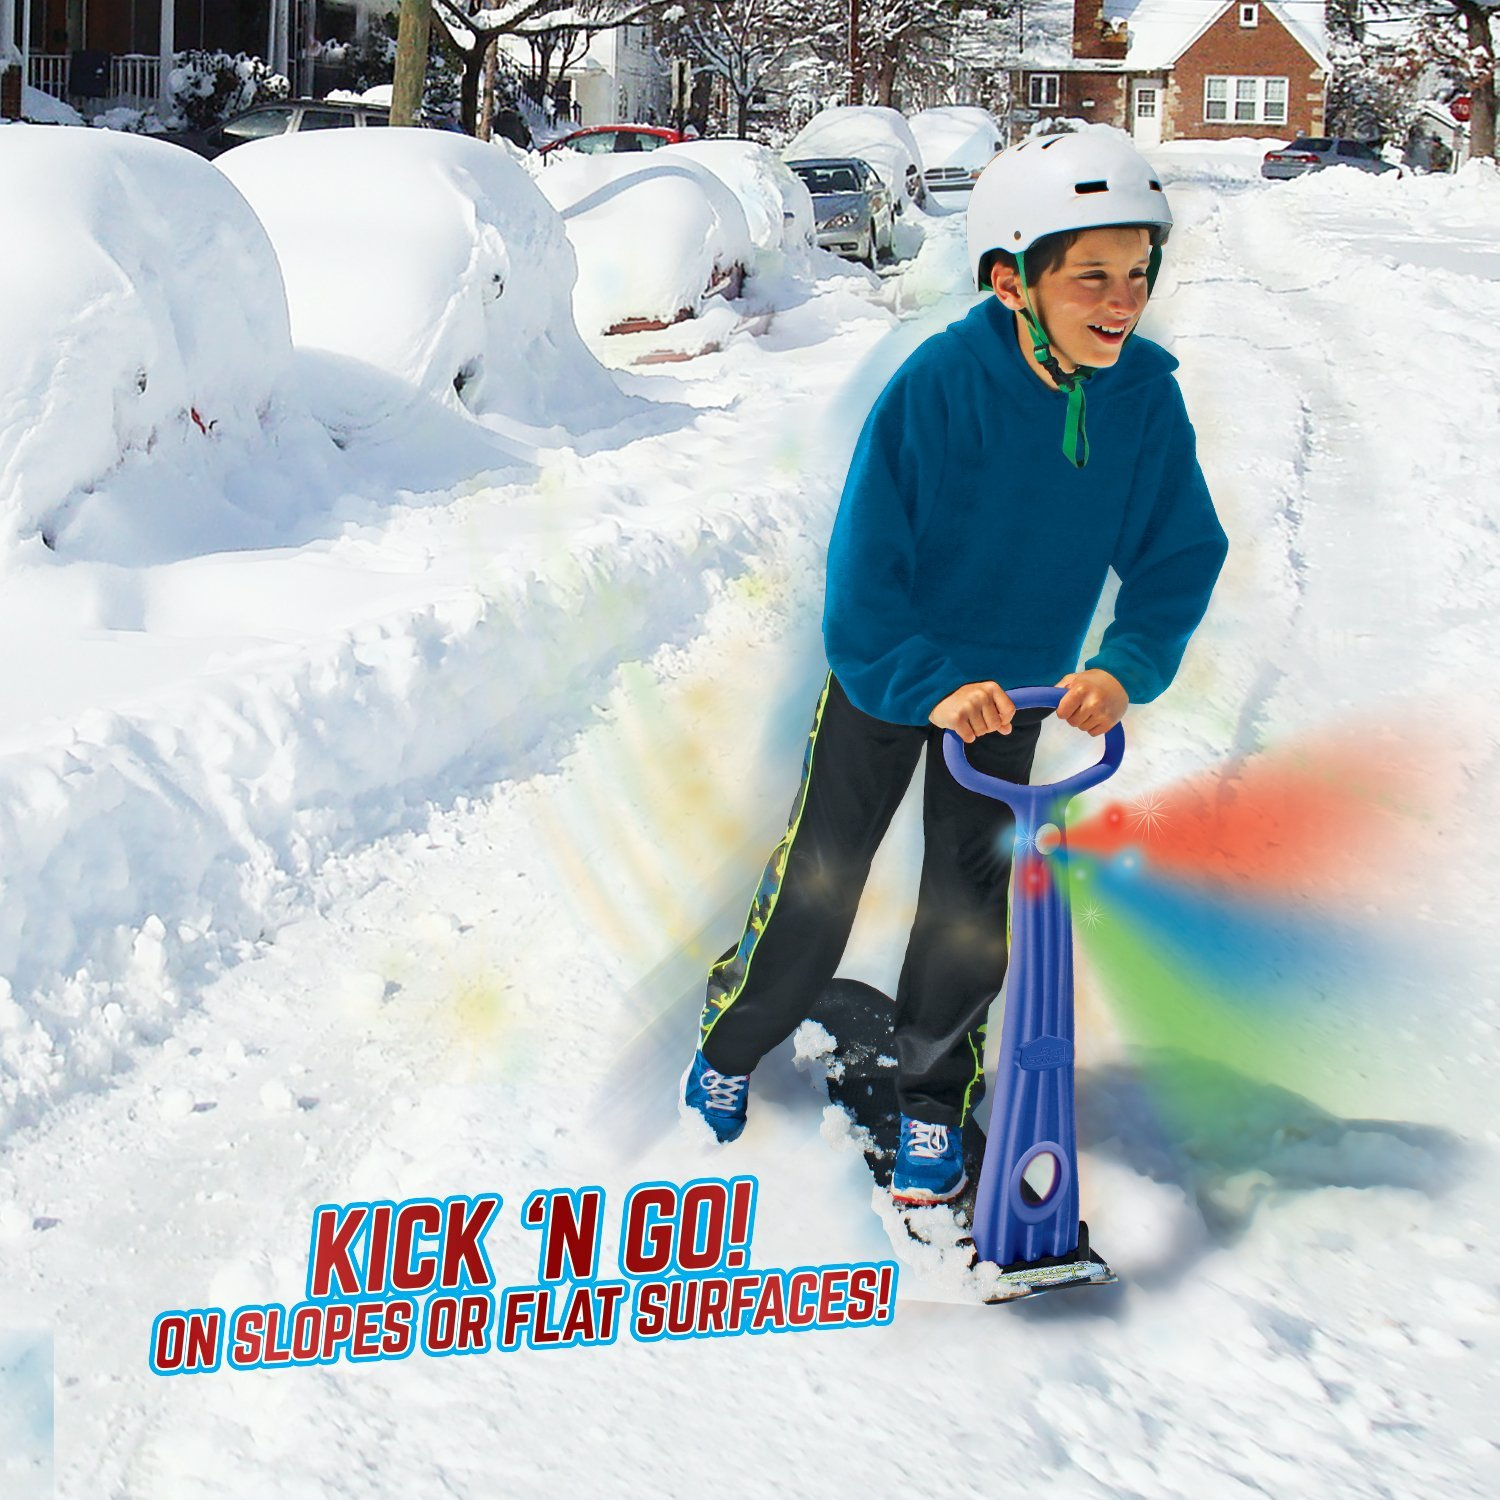 Original Ski Skooter, Fold-up Snowboard Kick-Scooter for Use on Snow & Grass, Snow Sled, Winter Toys fun snow toys kids